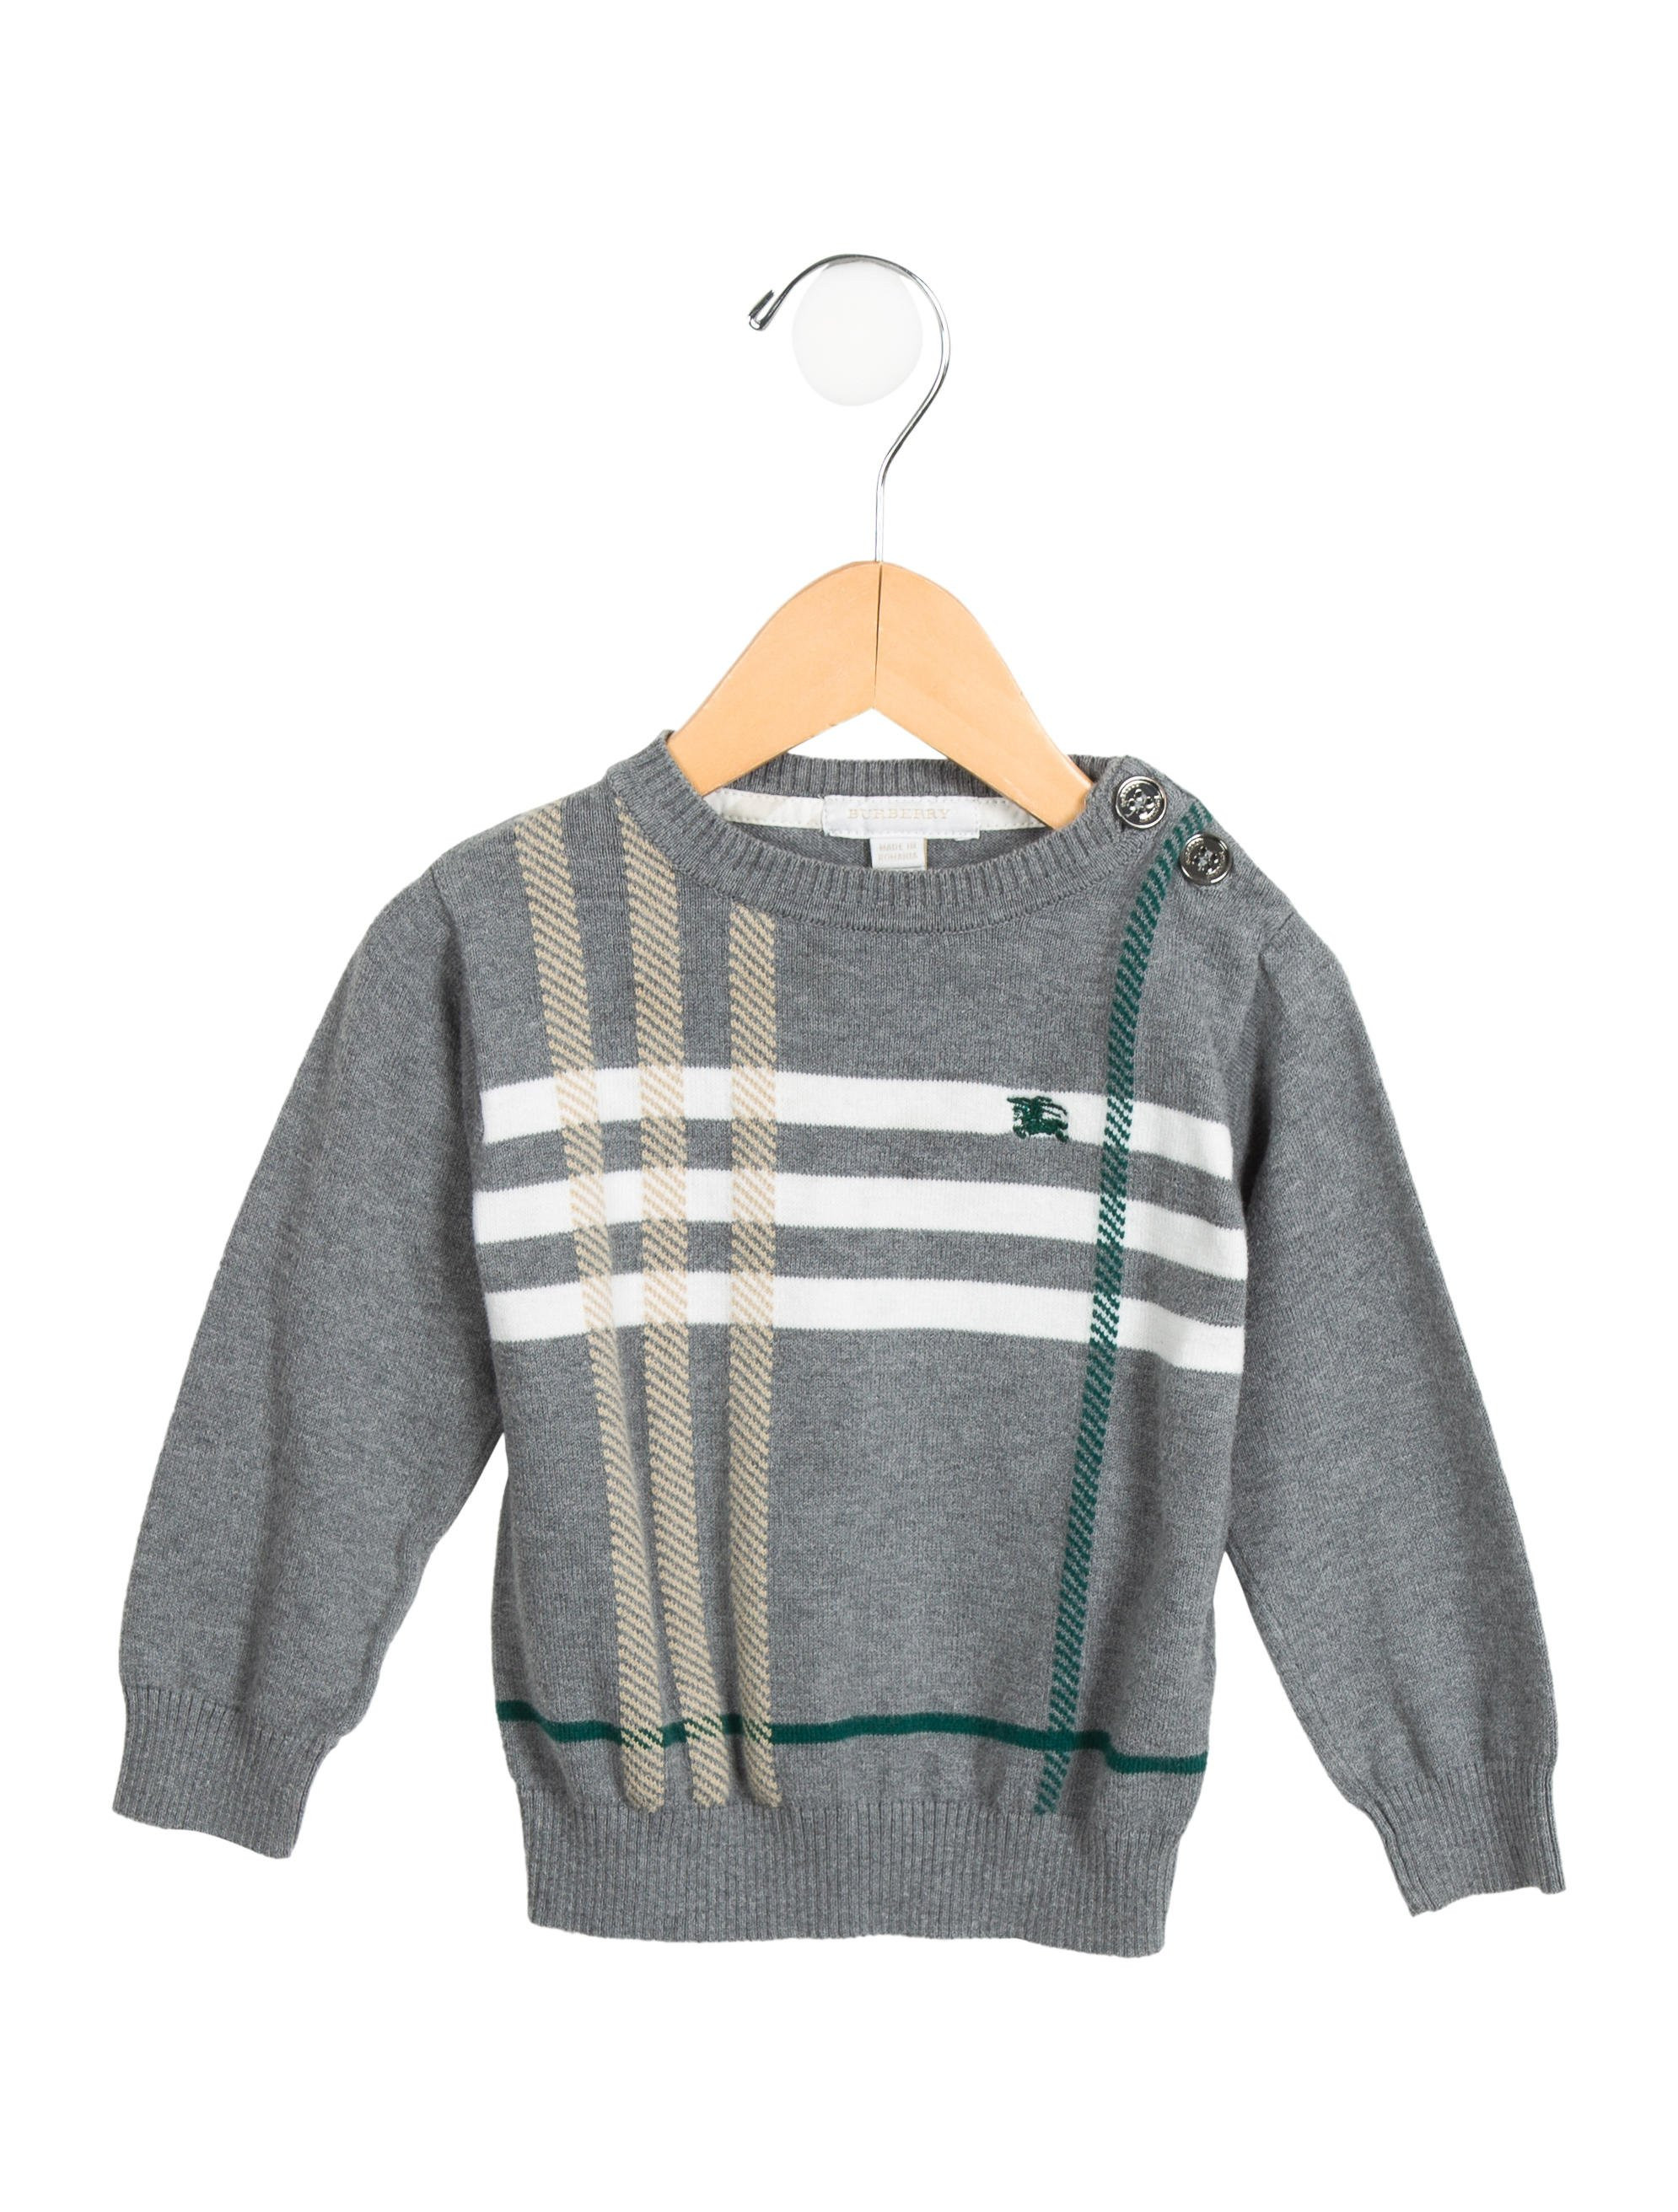 New Burberry Boys Nova Check Knit Sweater Boys Bur Boys Knit Sweater Of Lovely 50 Models Boys Knit Sweater